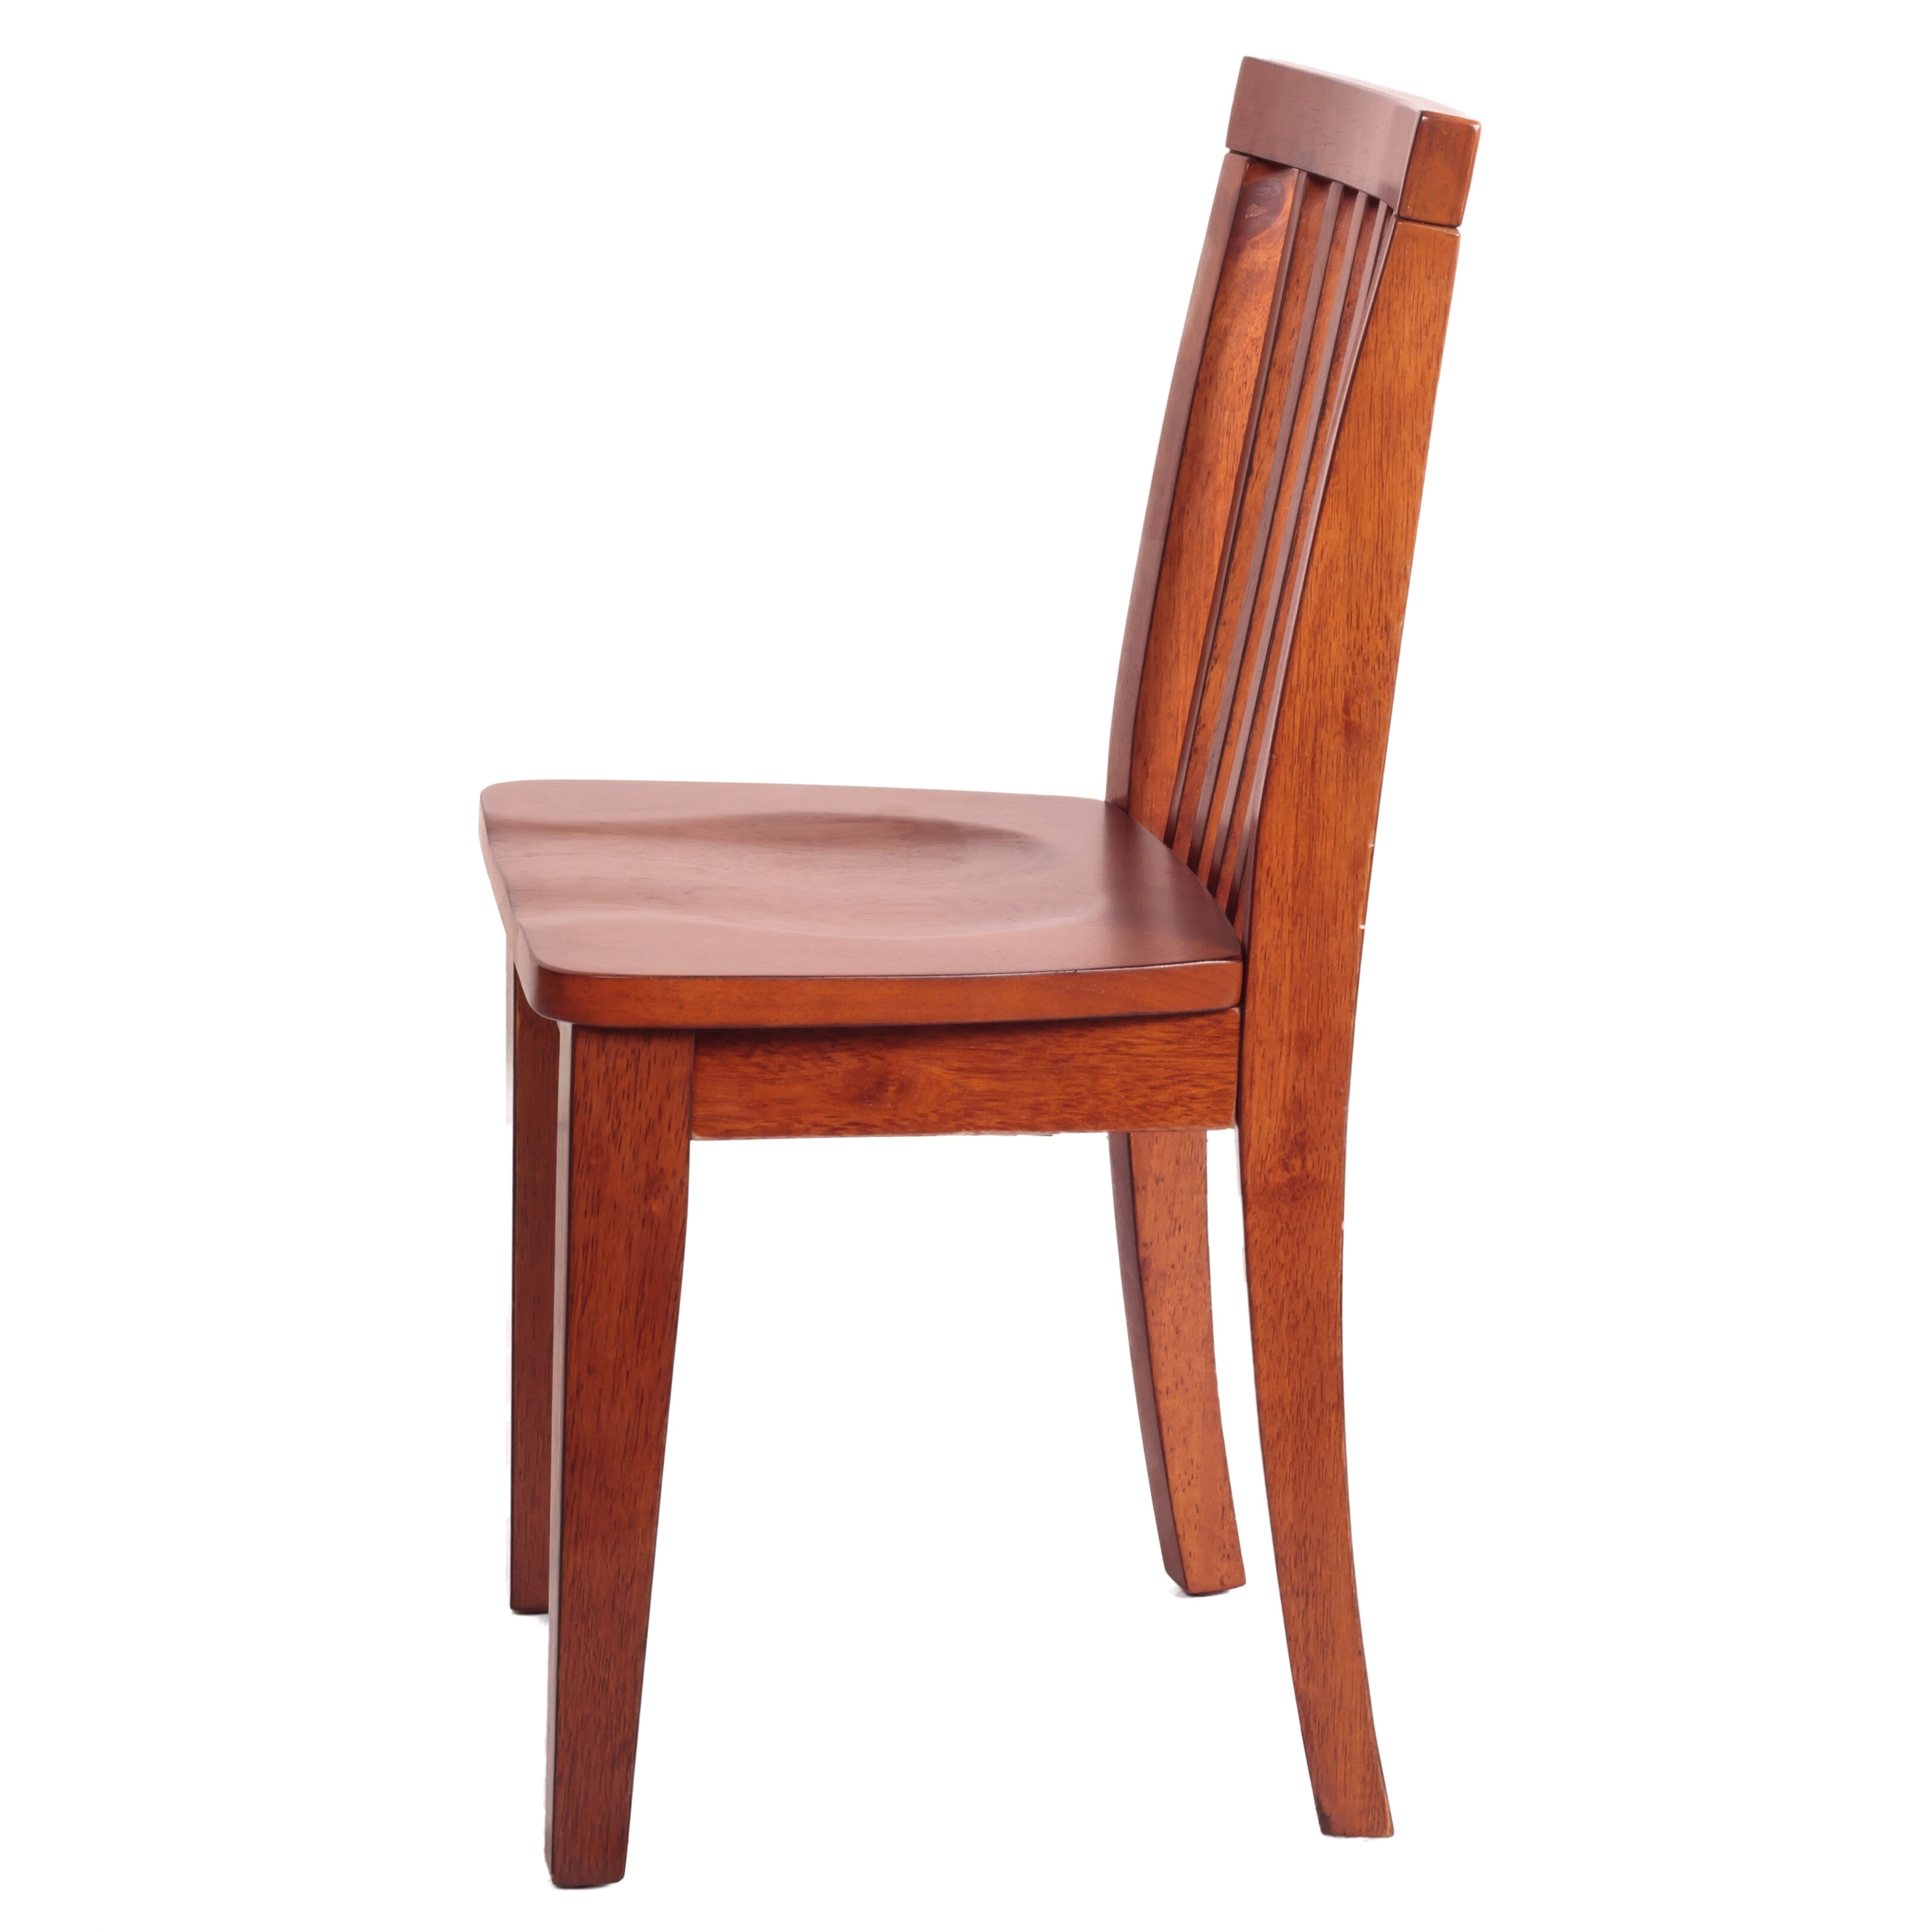 Afg Furniture Reverse Search